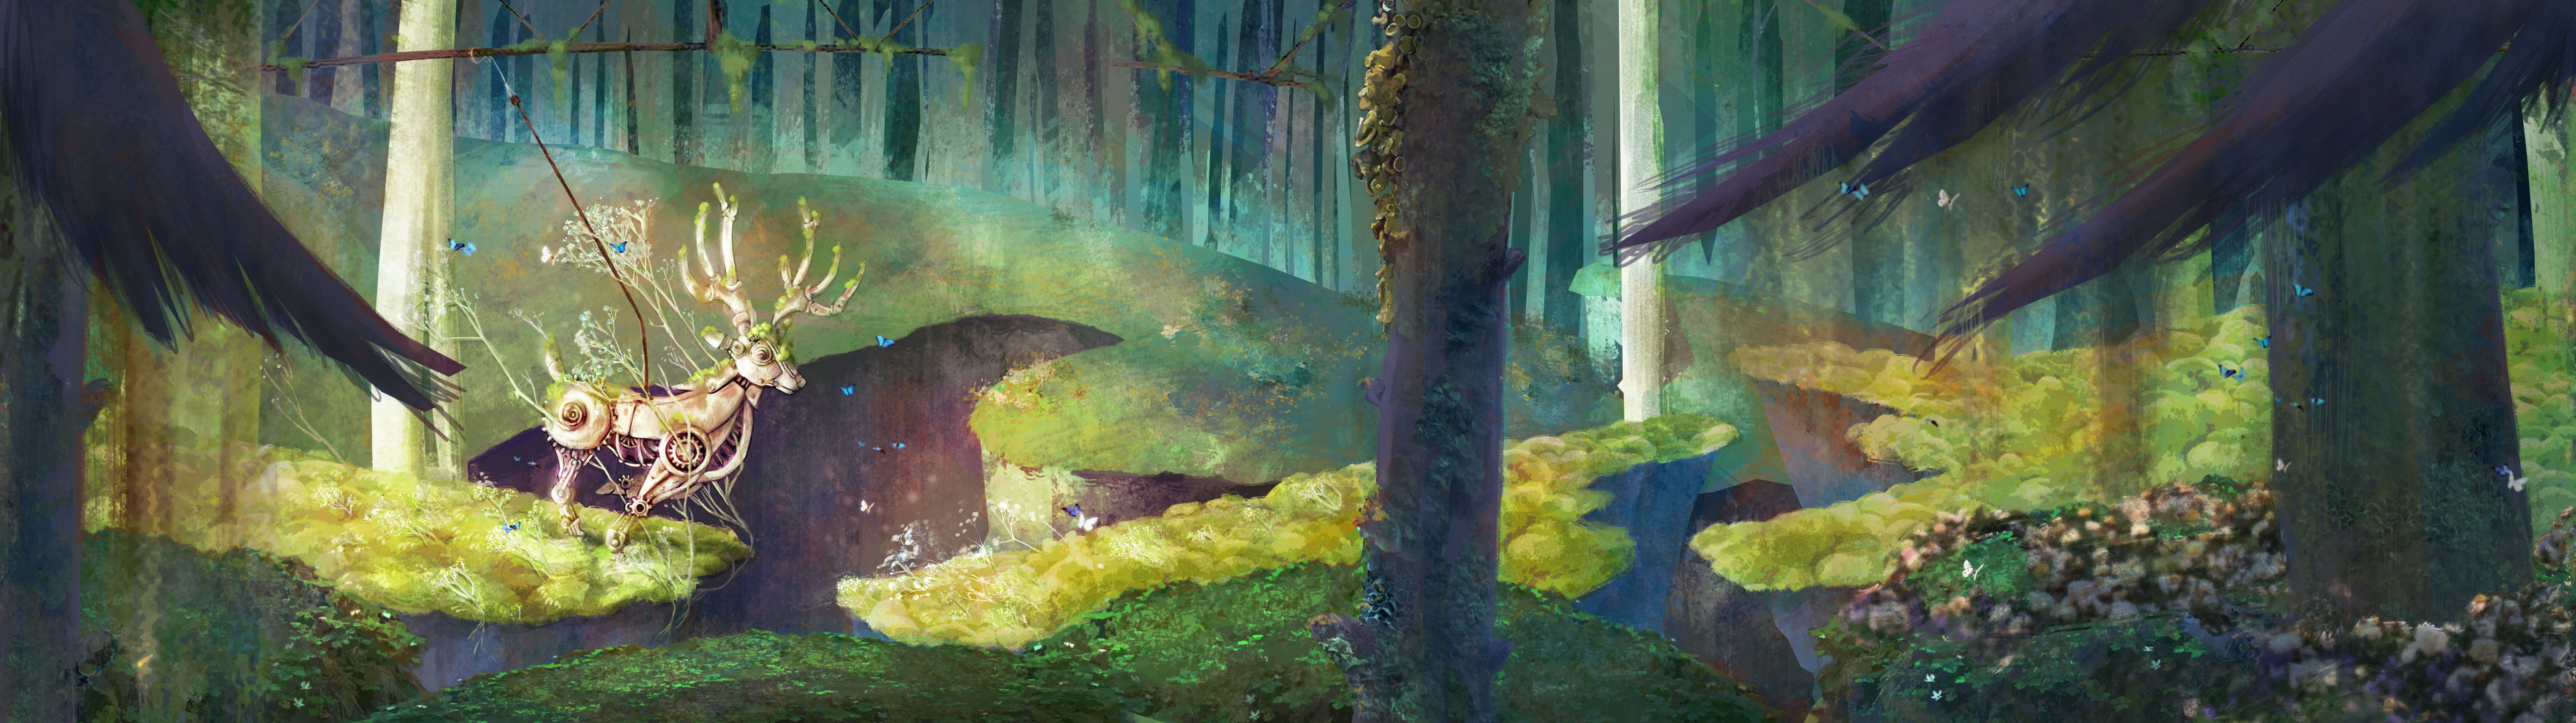 Concept painting - sunlight